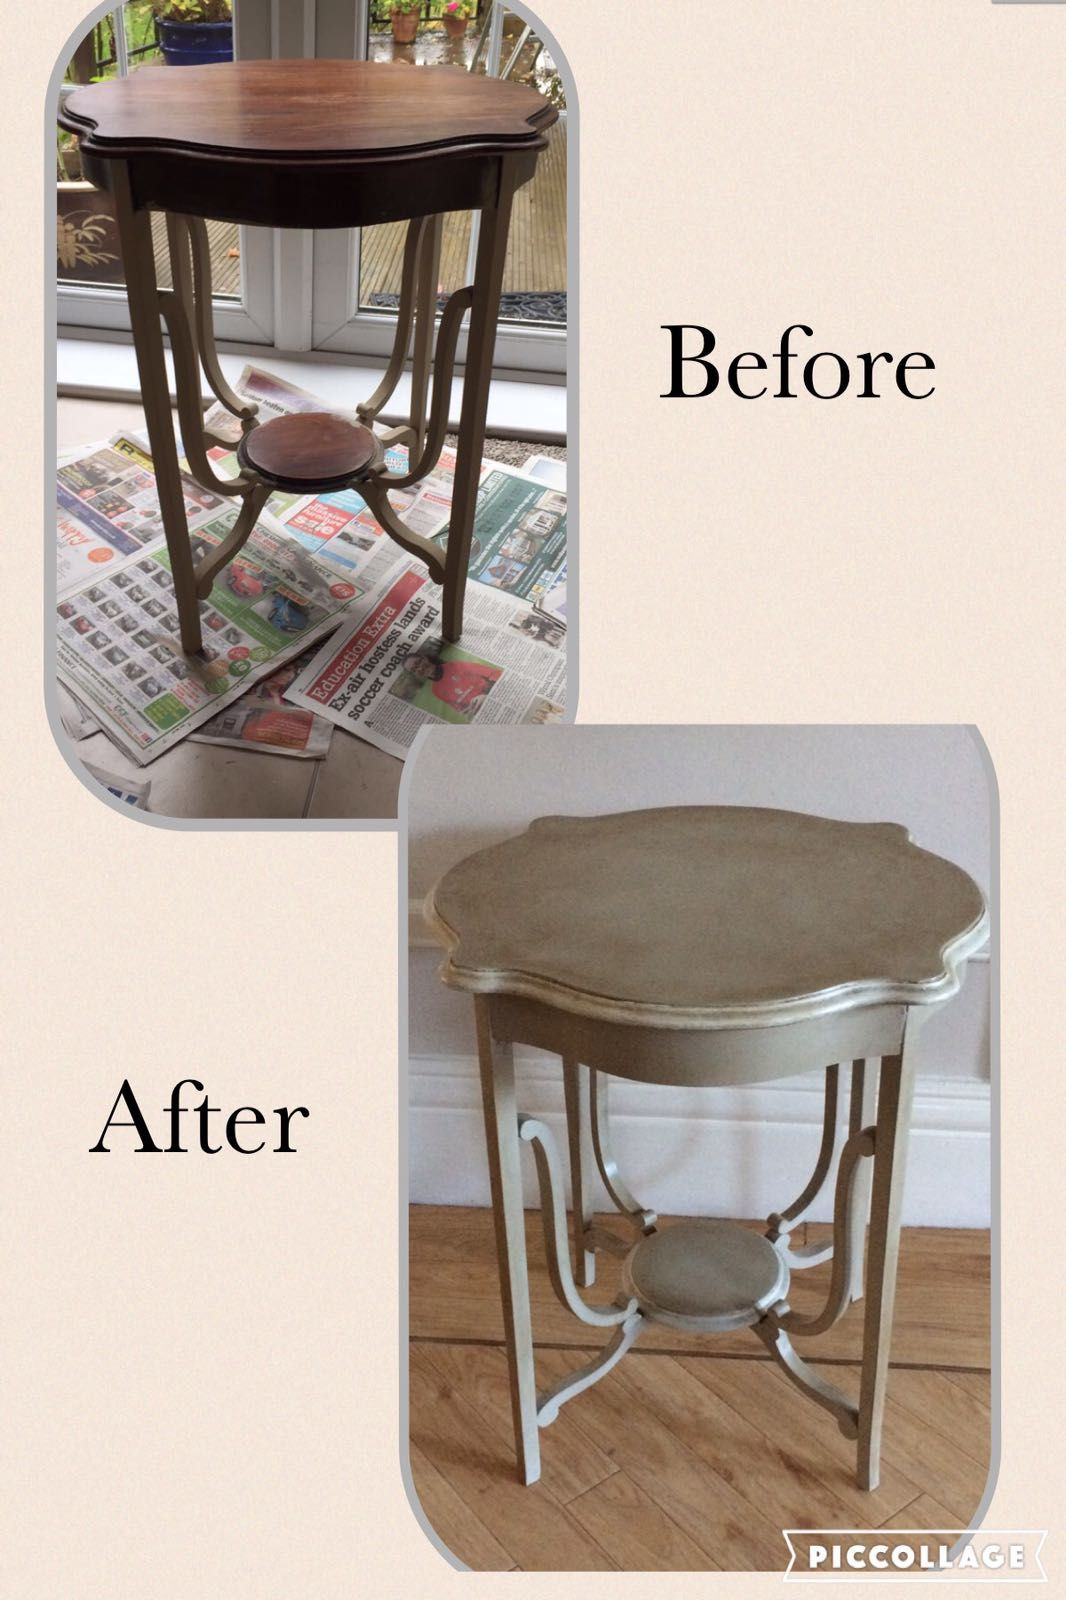 A Lovely Vintage Side Table Painted In Sloan Chalk Paint And Given A Dark  Wax Finish To Give A Beautiful Aged Effect.